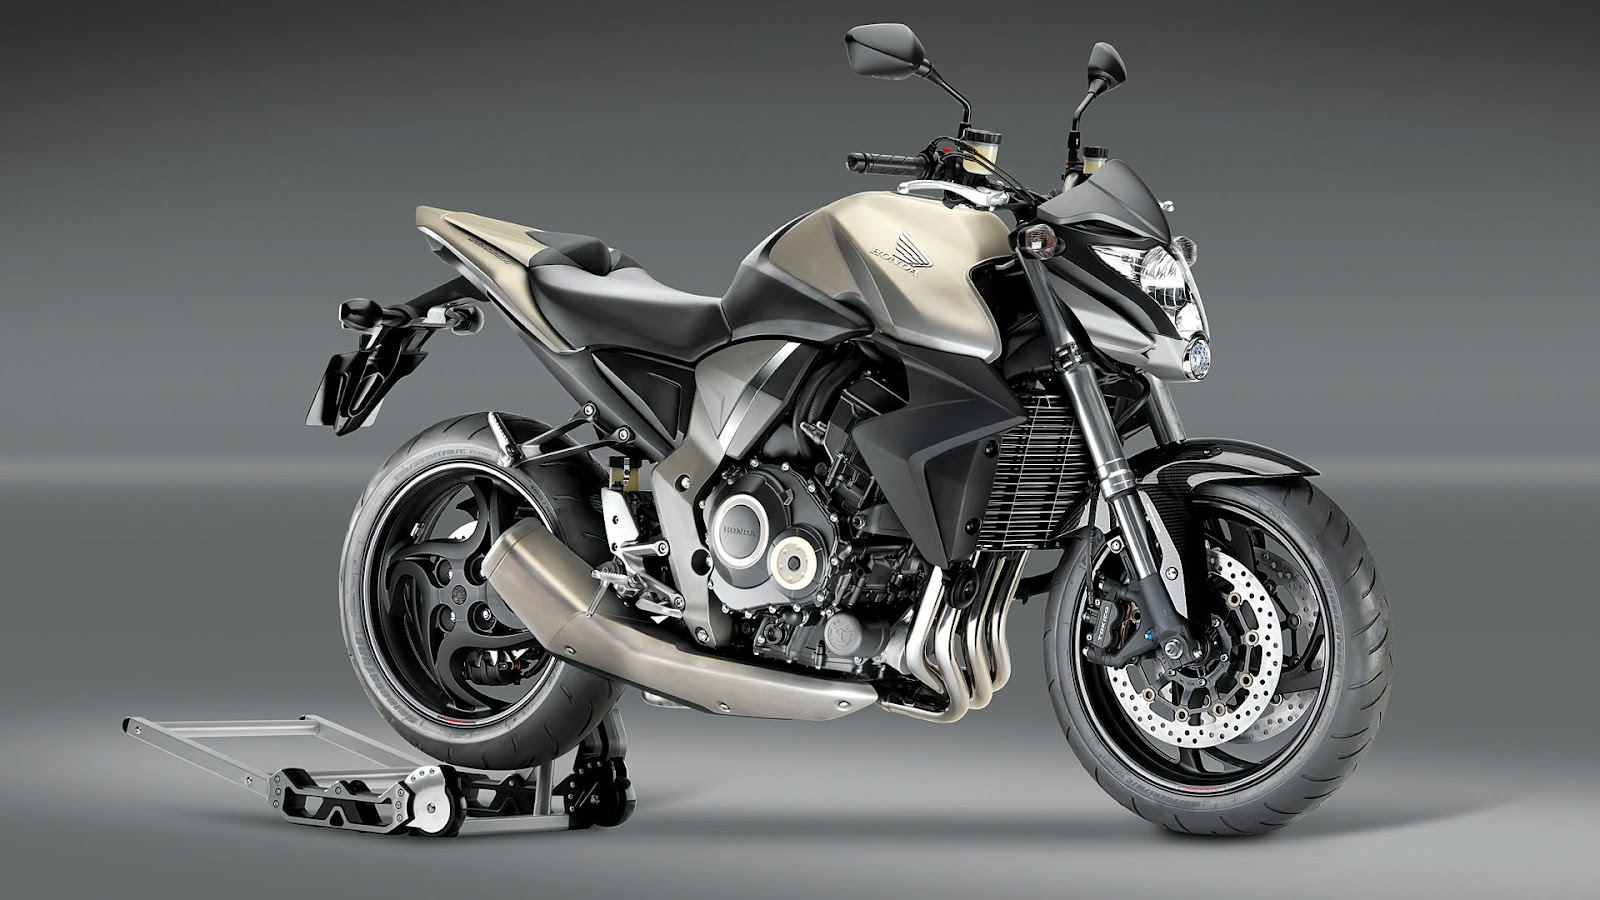 honda cb1000r hd wallpapers high definition free. Black Bedroom Furniture Sets. Home Design Ideas